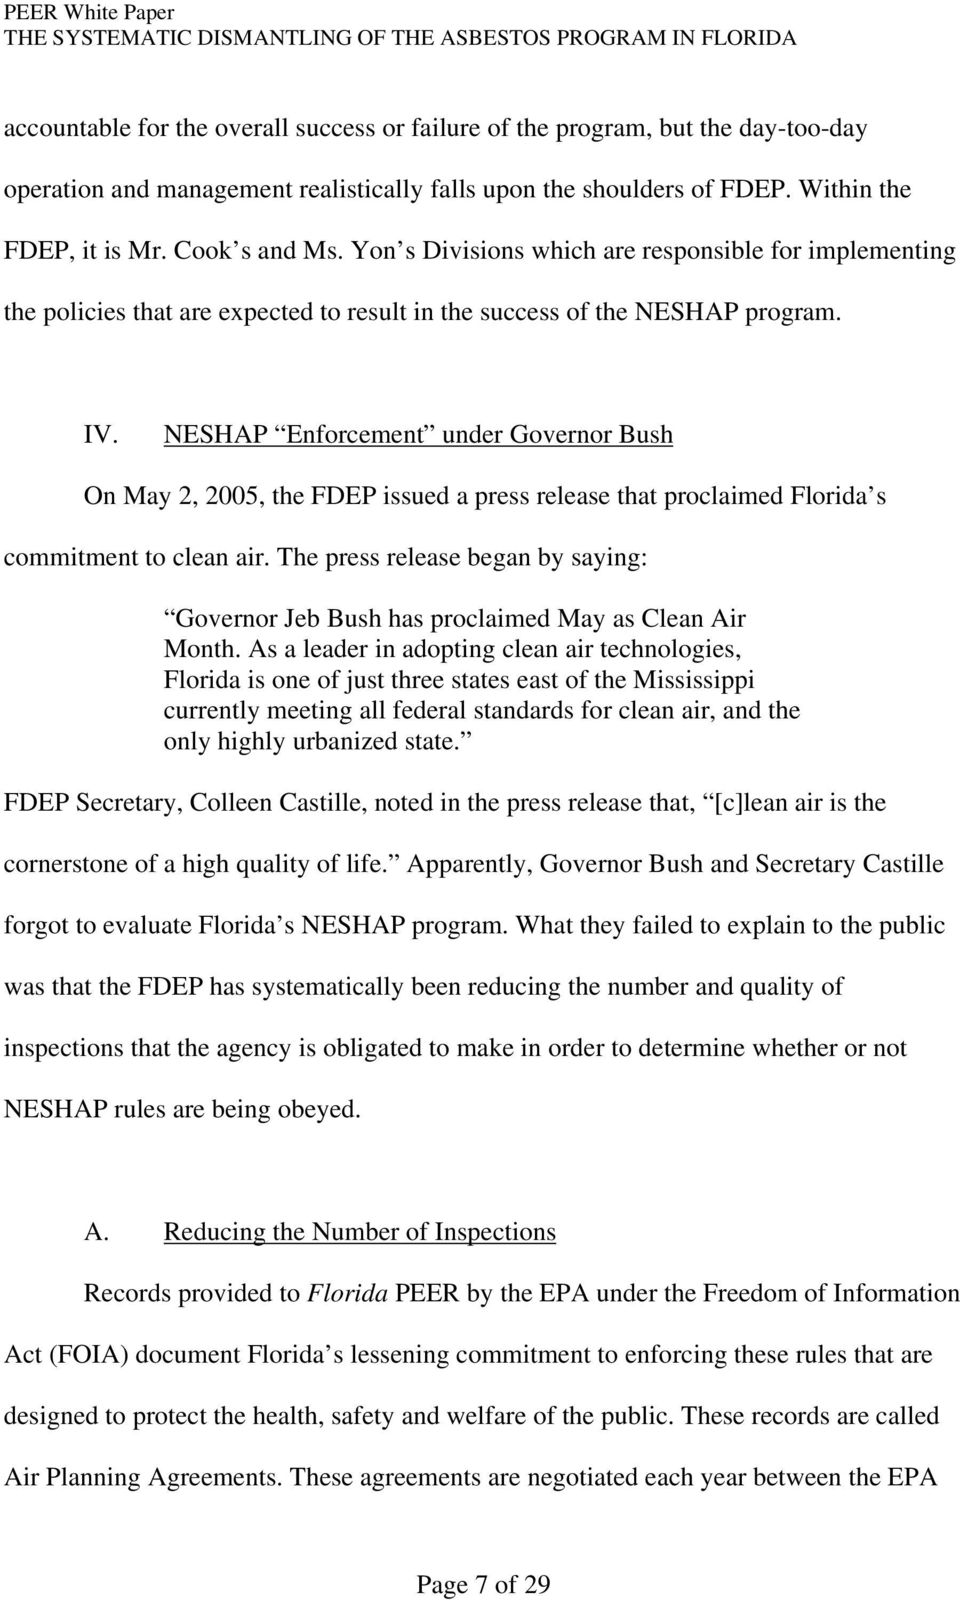 NESHAP Enforcement under Governor Bush On May 2, 2005, the FDEP issued a press release that proclaimed Florida s commitment to clean air.